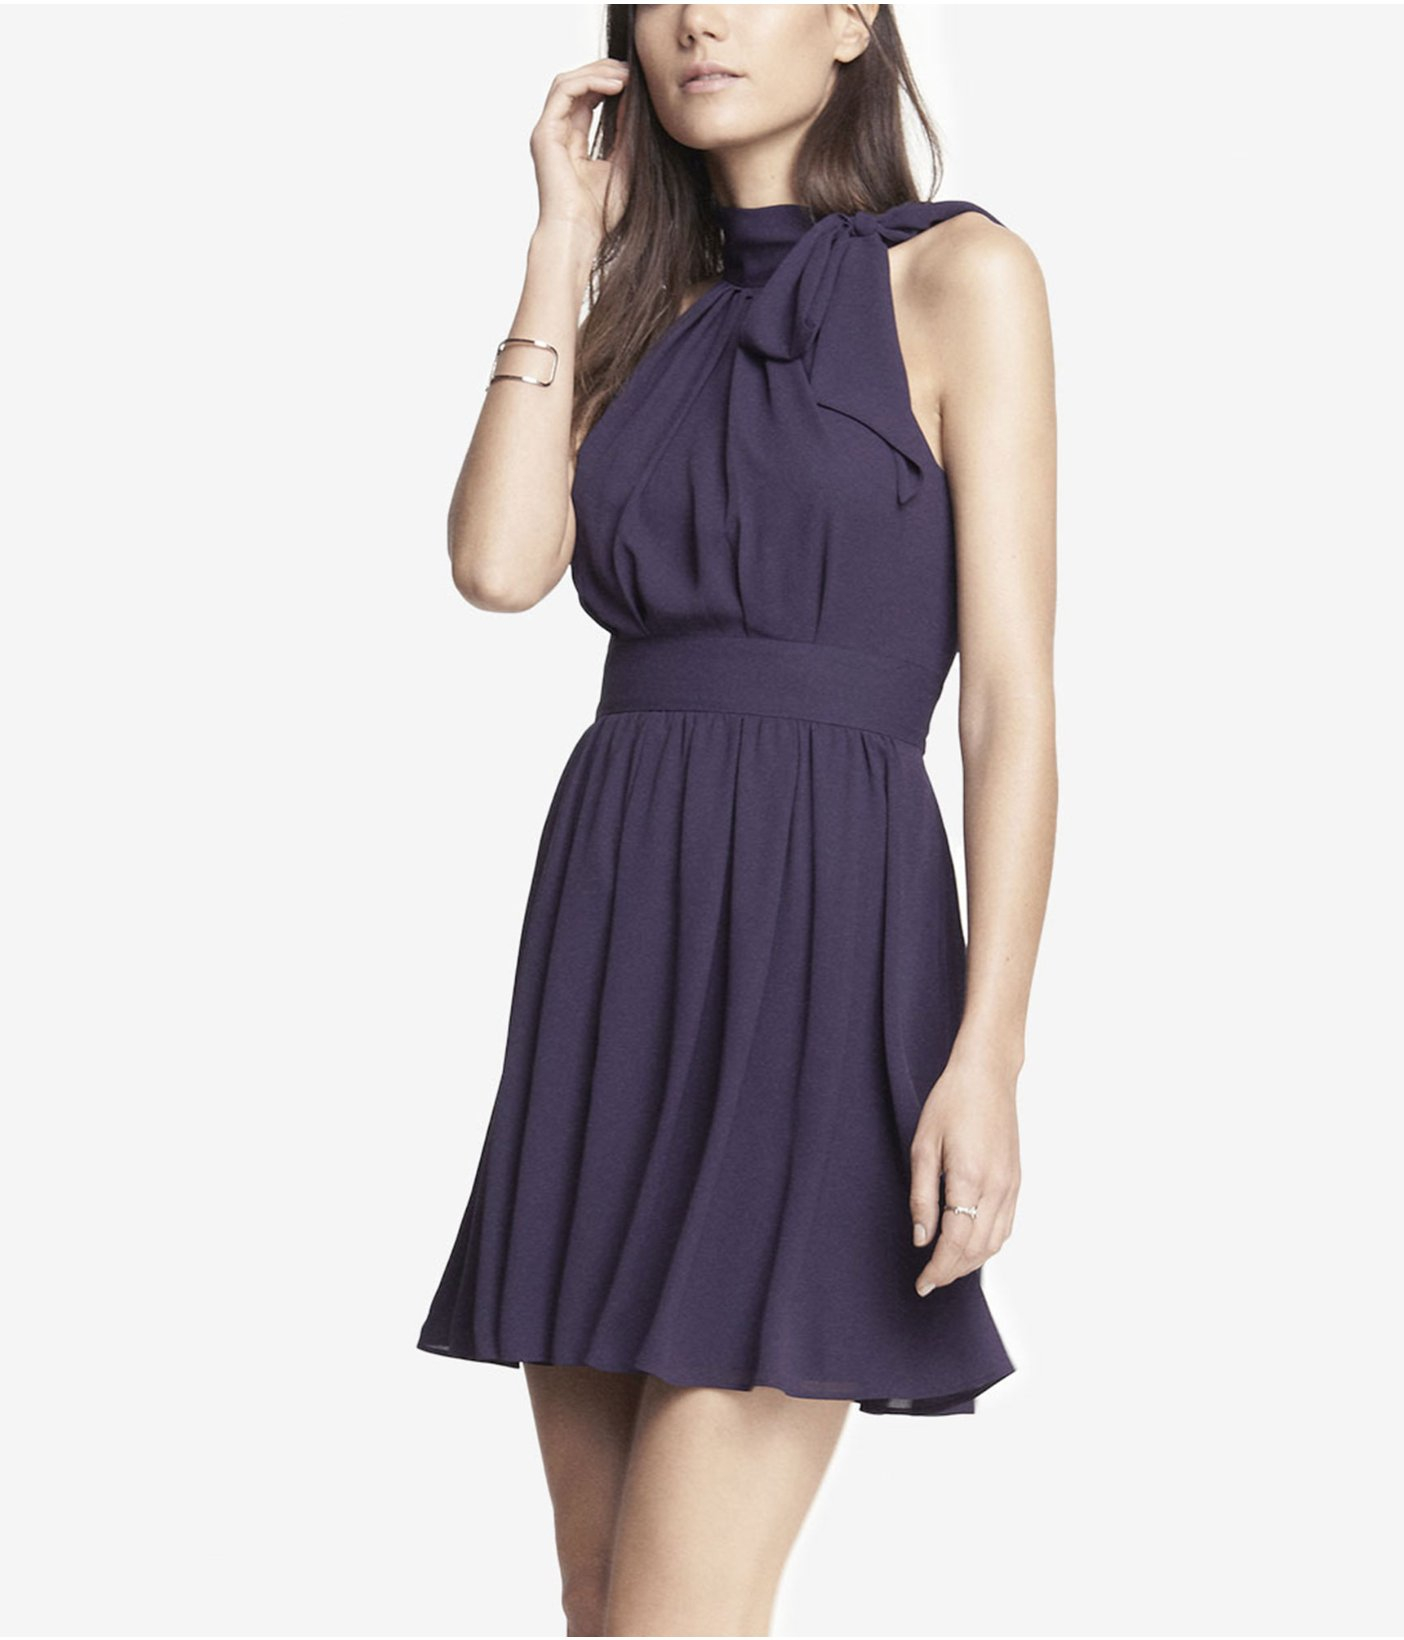 Express tie neck halter dress in blue plum lyst for Express shirt and tie